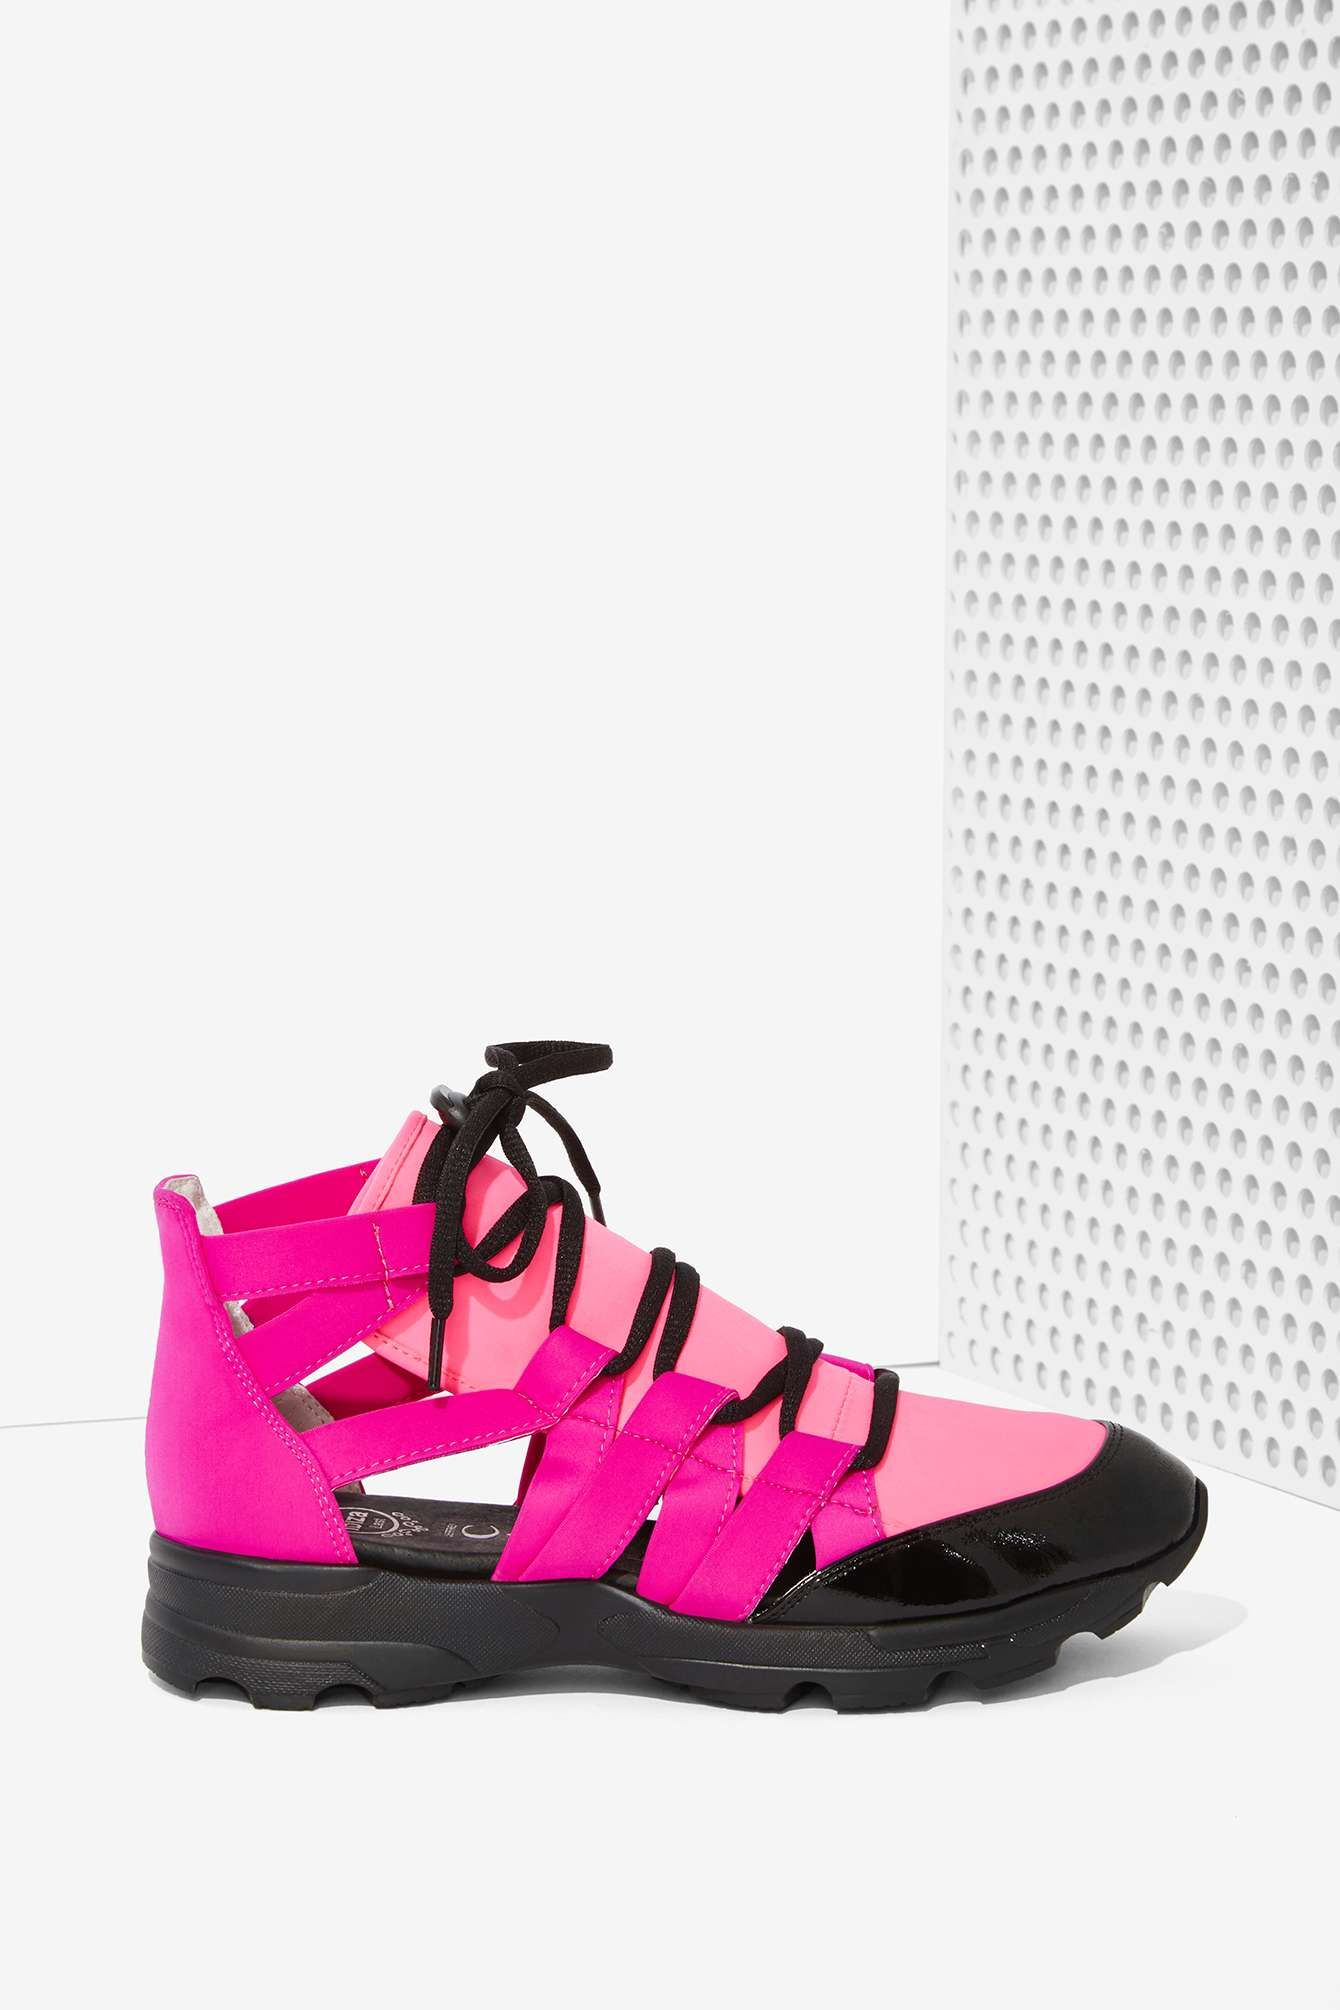 new styles 9327c 50b4c Jeffrey Campbell Vedda Neoprene Trainer   Shop Shoes at Nasty Gal